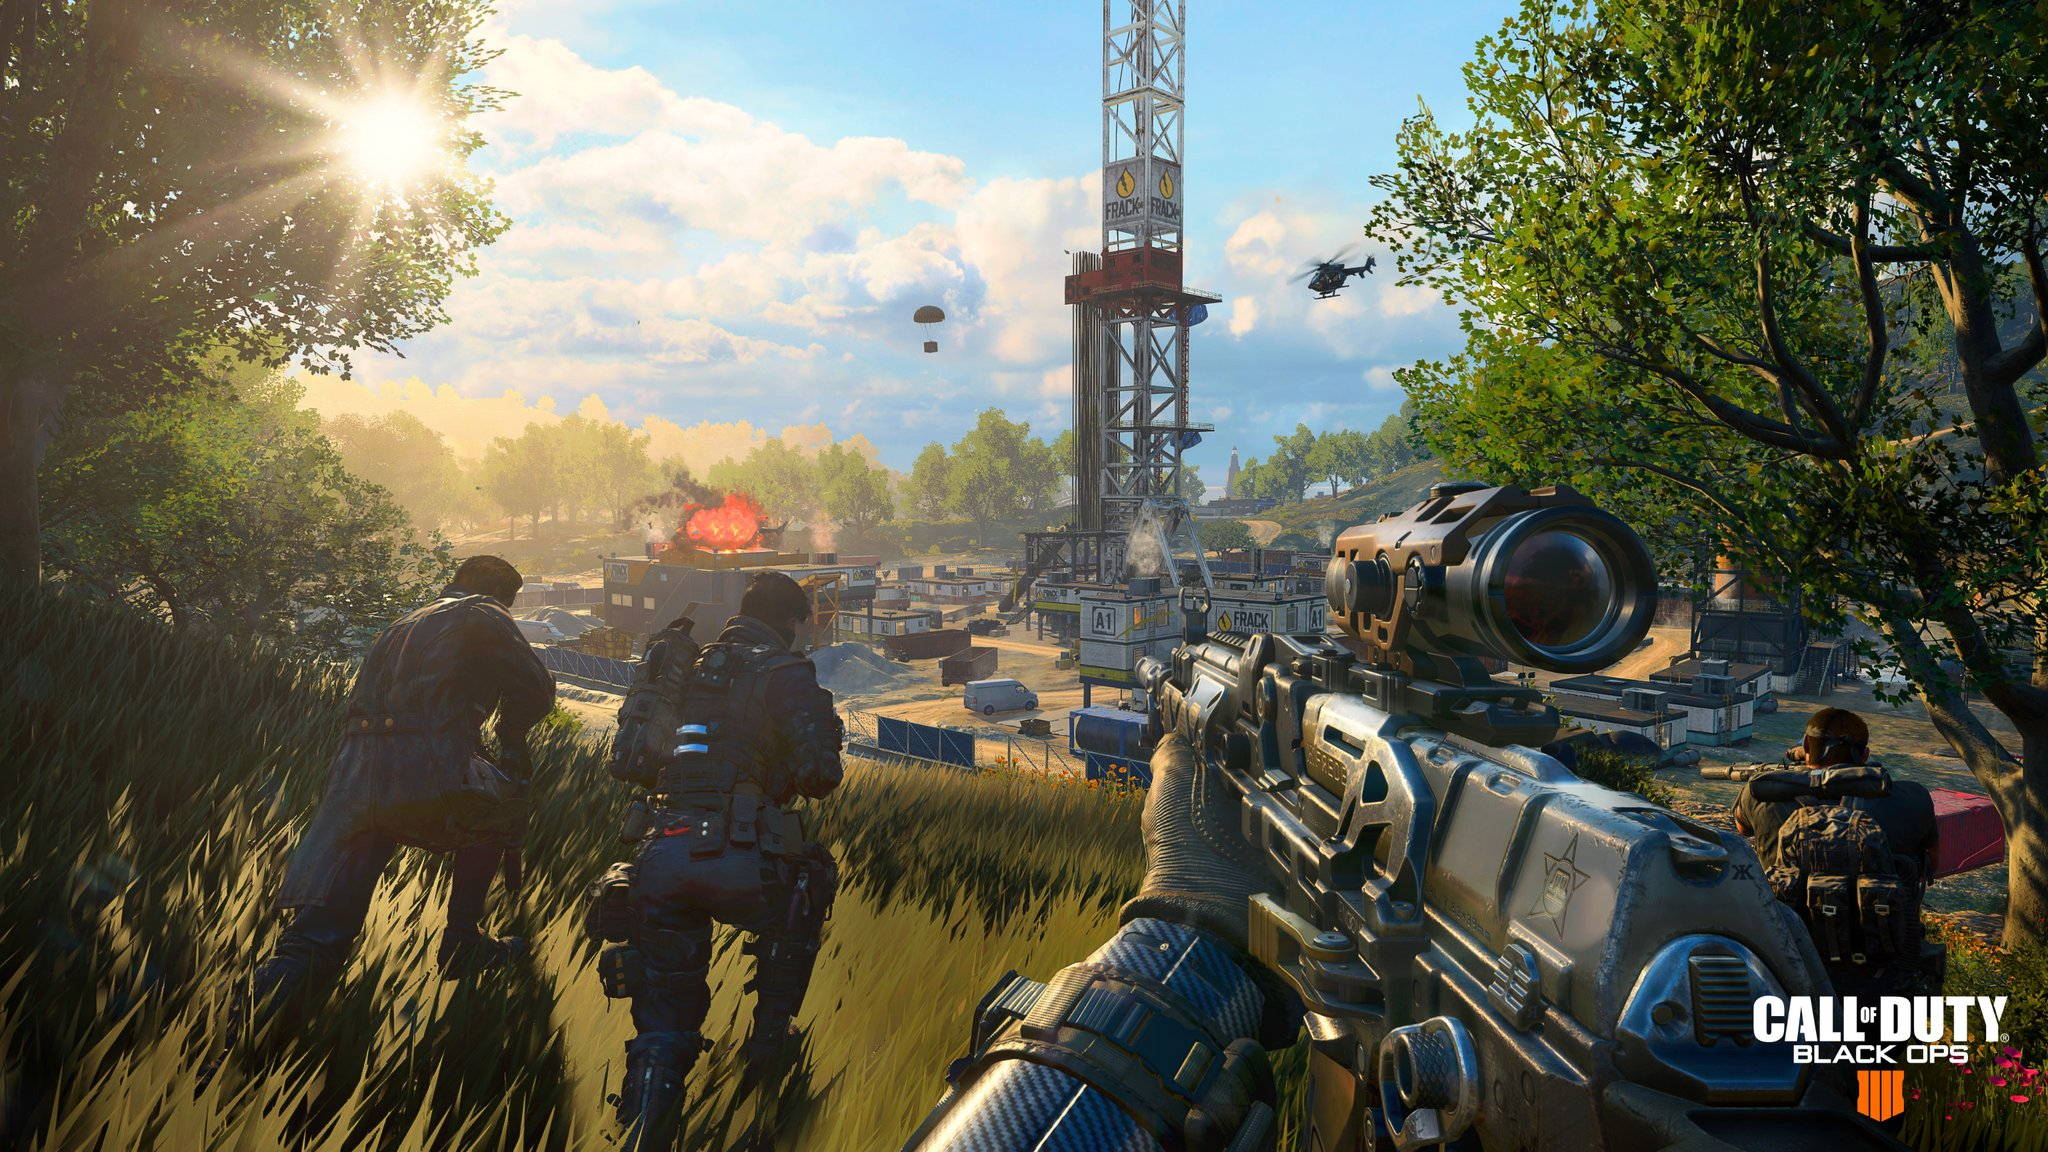 6 Reasons Why Call of Duty: Black Ops 4 Blackout Is Irresistible